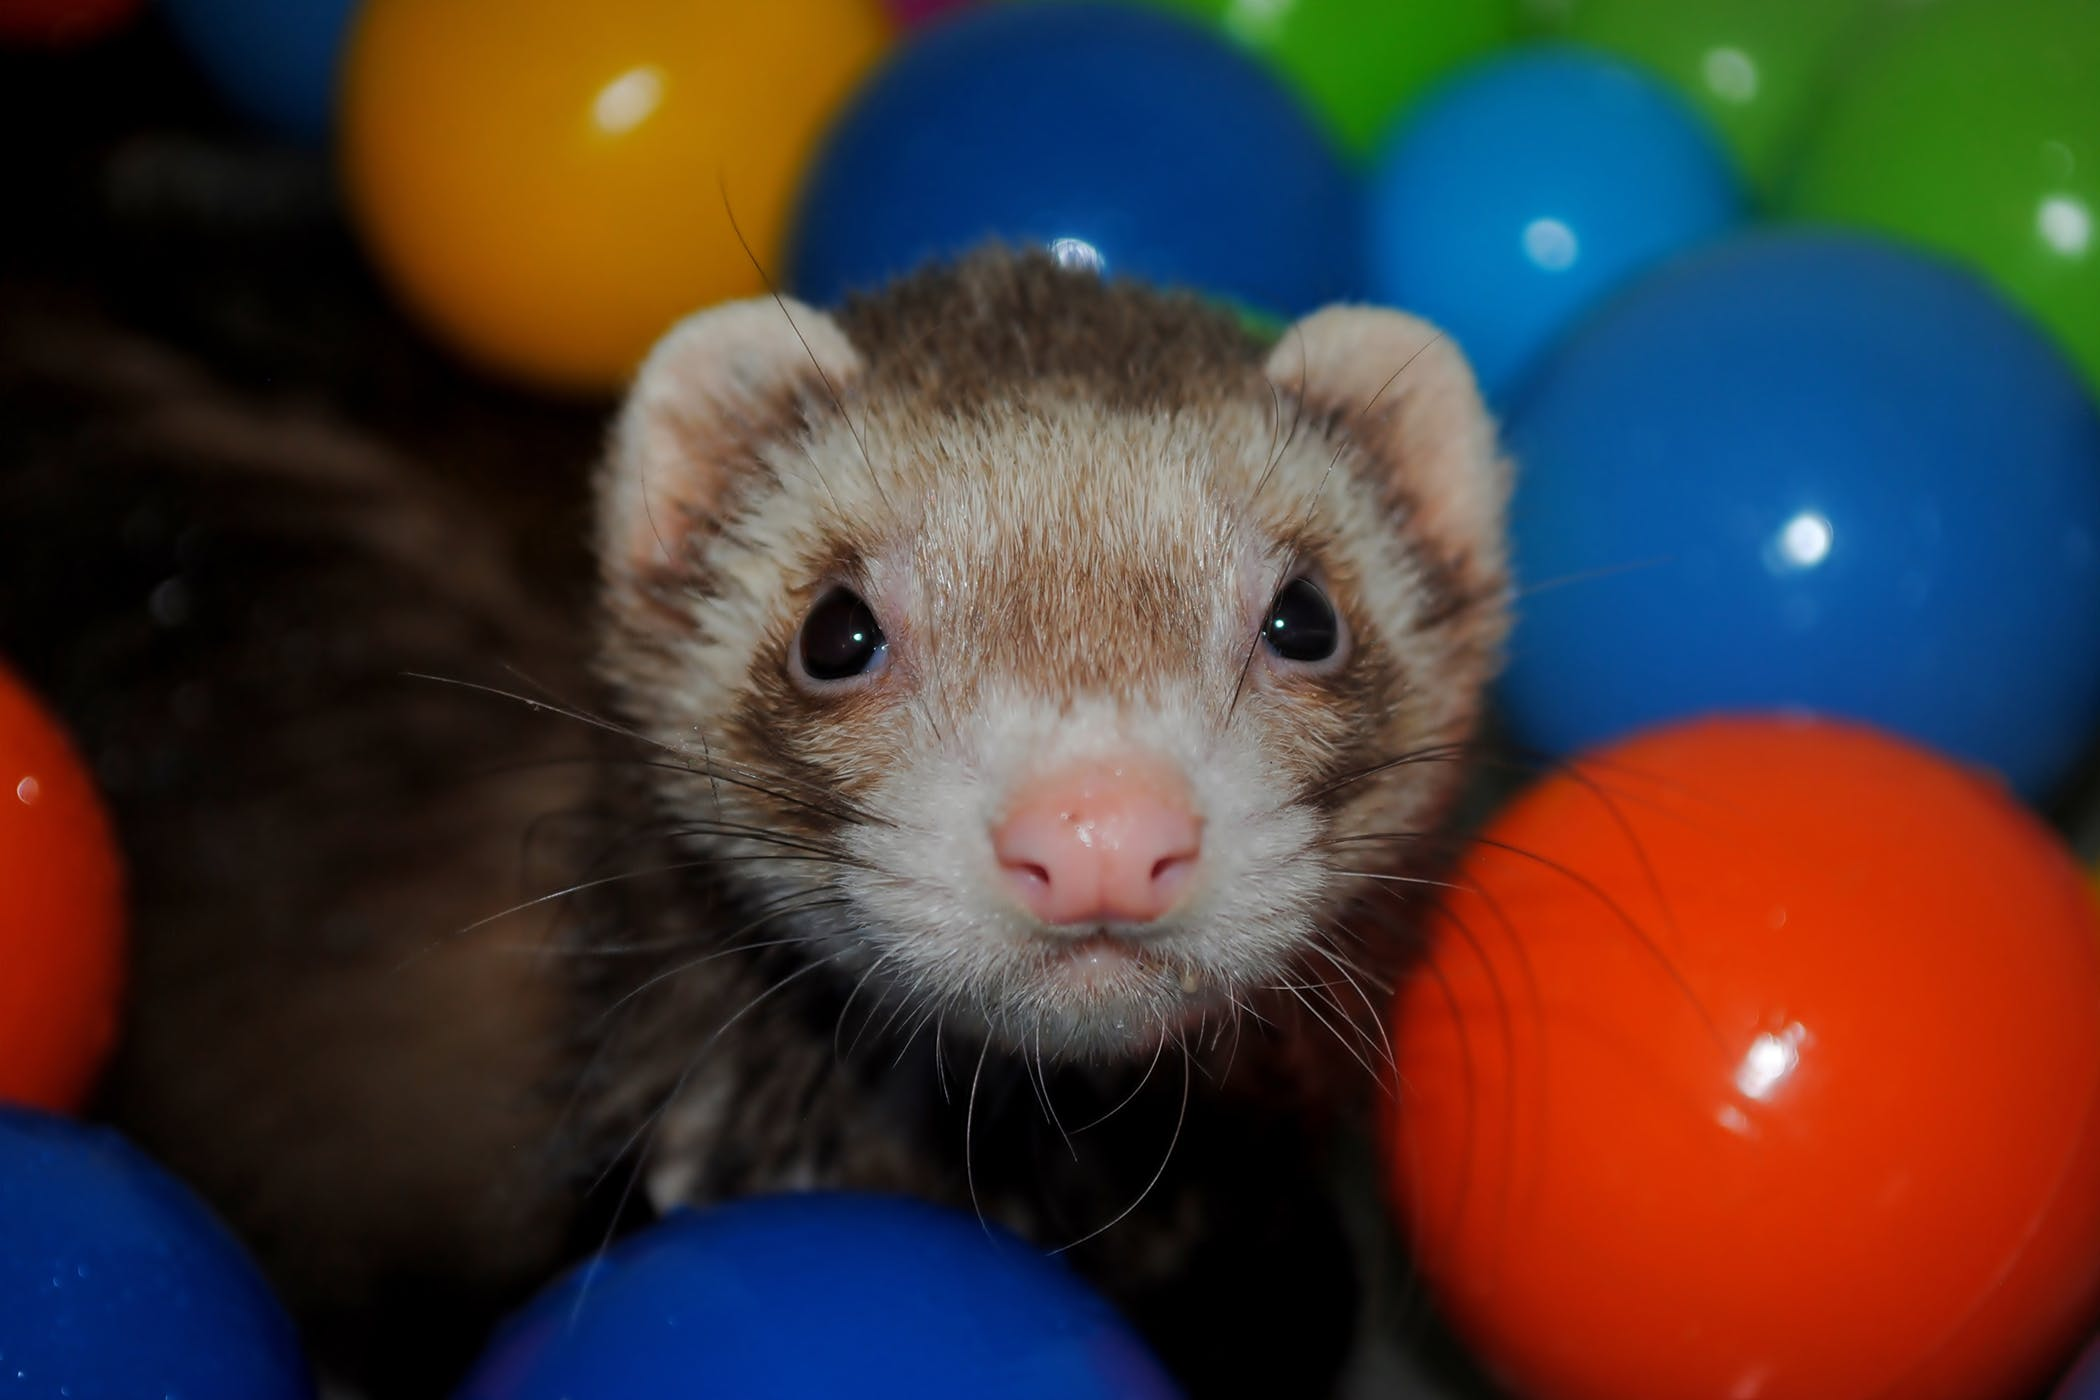 Enlarged Spleen in Ferrets - Symptoms, Causes, Diagnosis